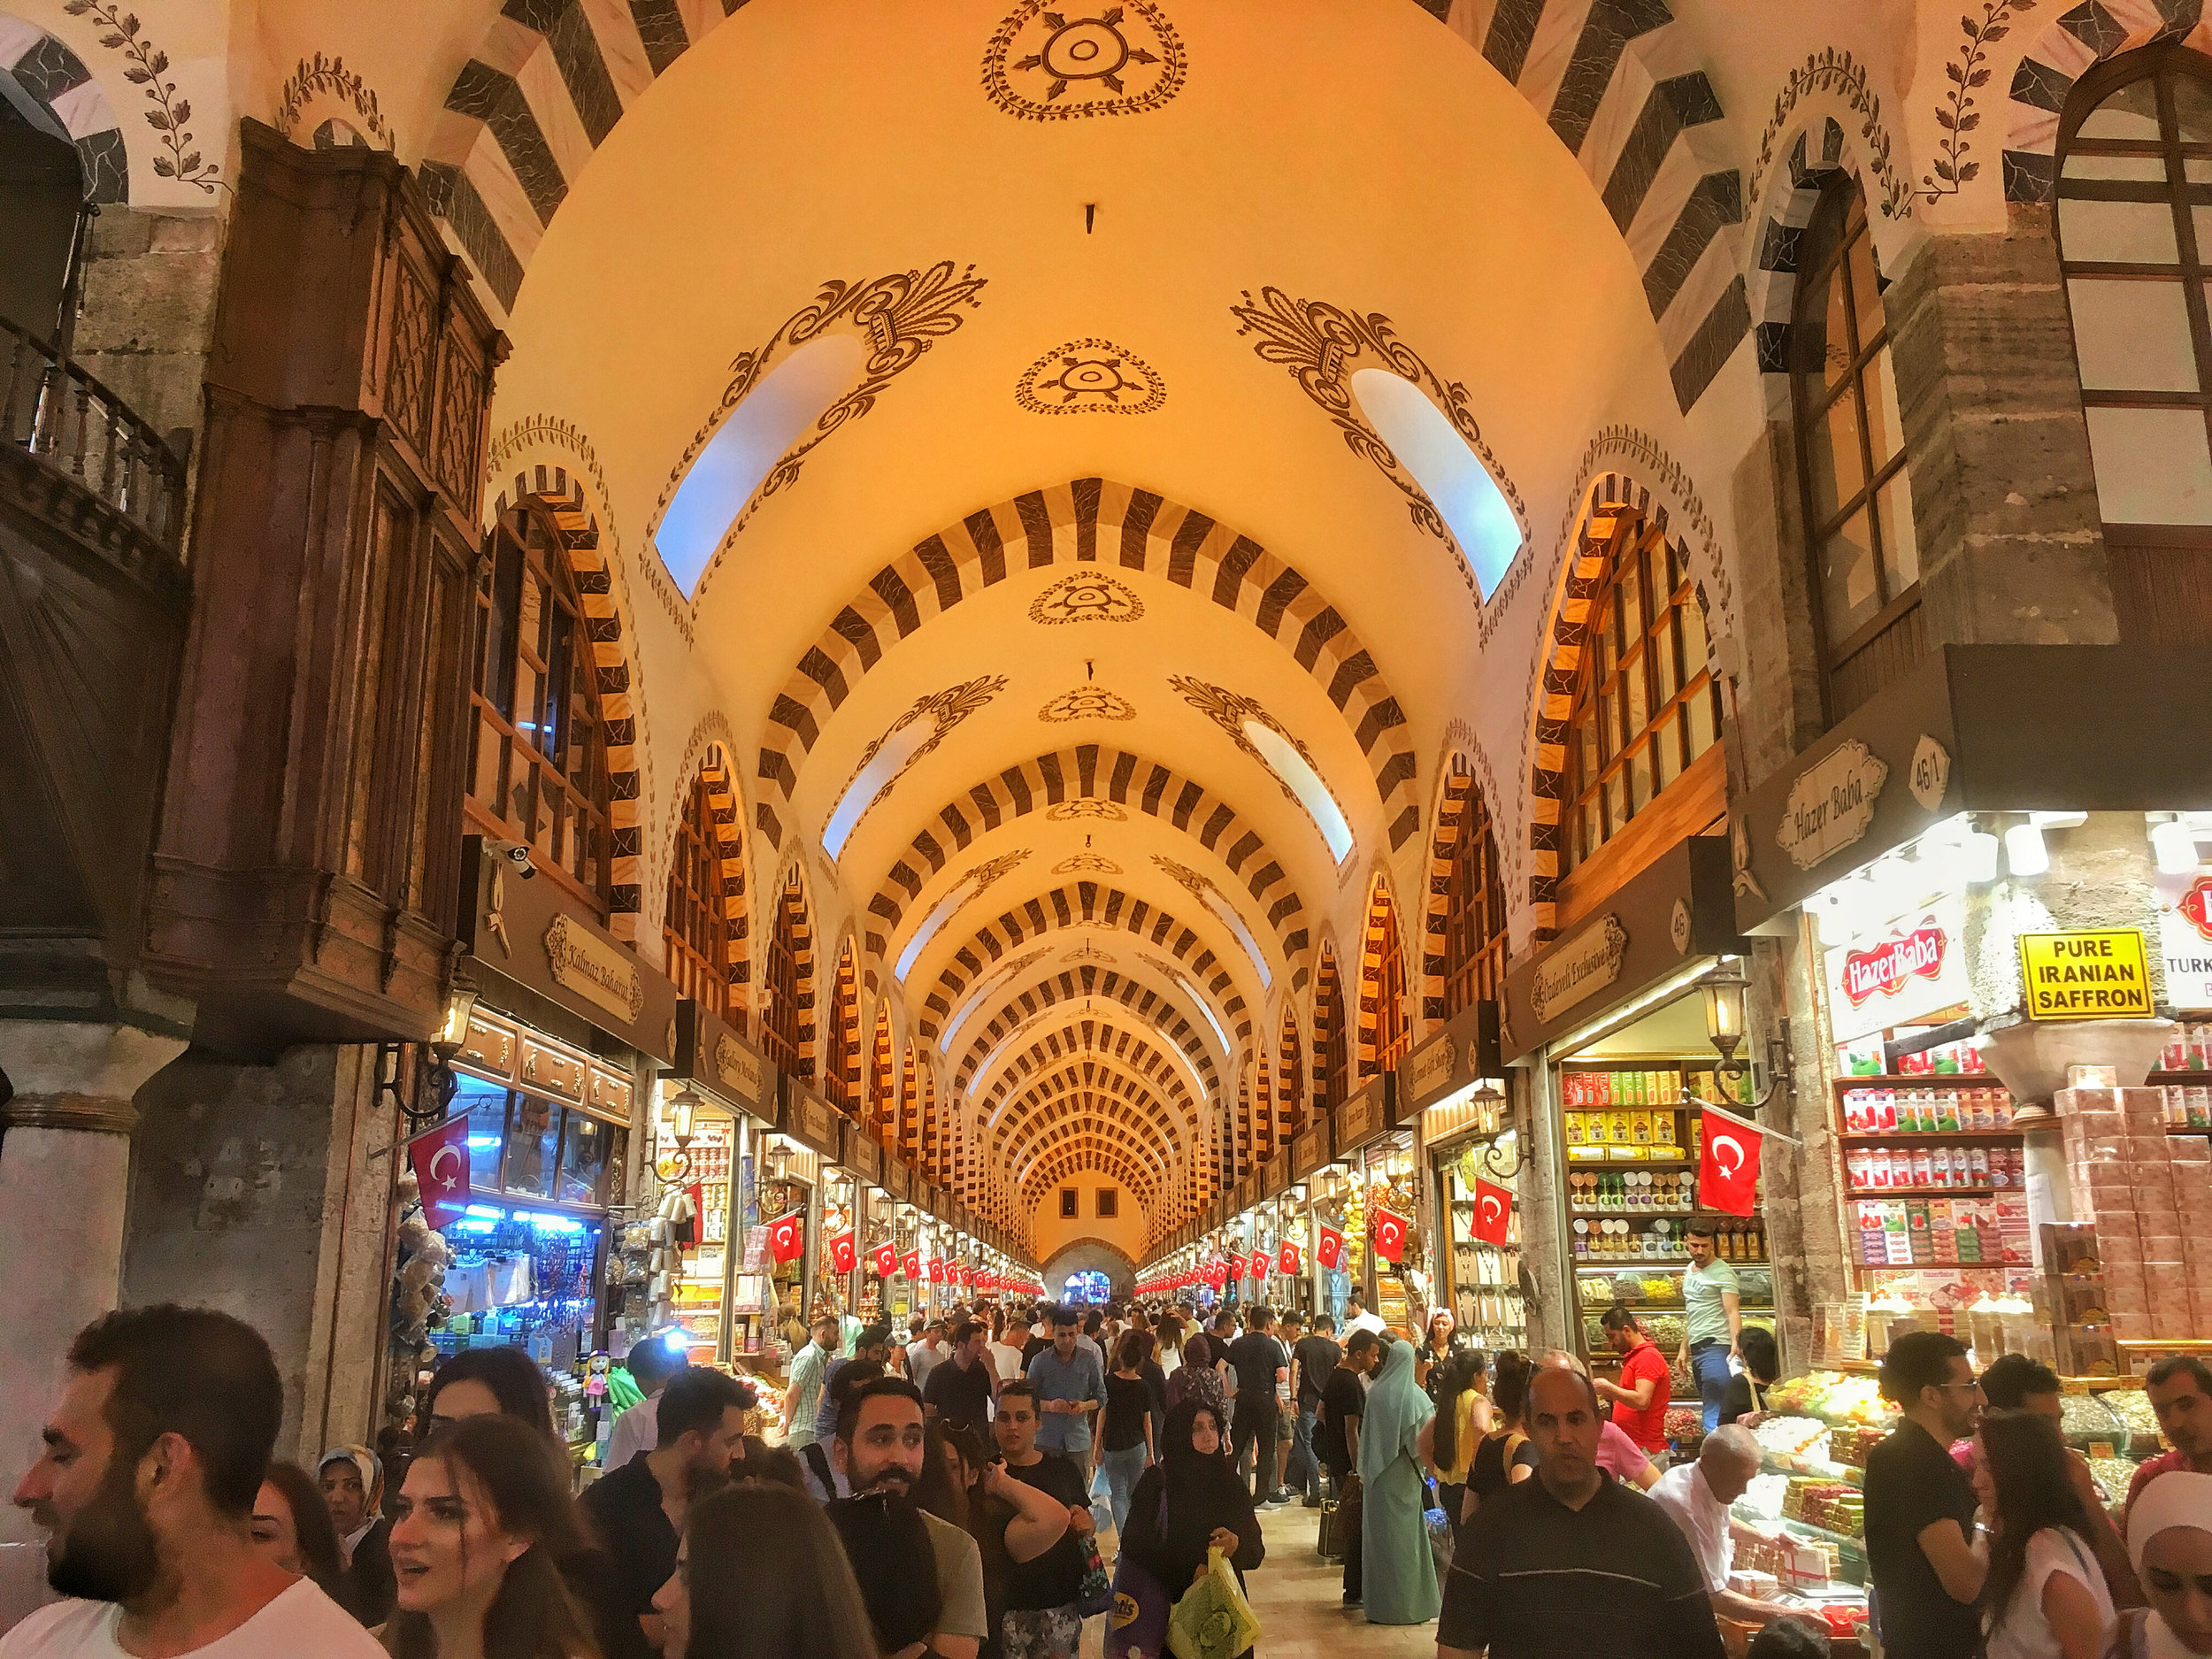 The Grand Bazaar - What it lacks in authenticity these days it makes up for with delicious samples!